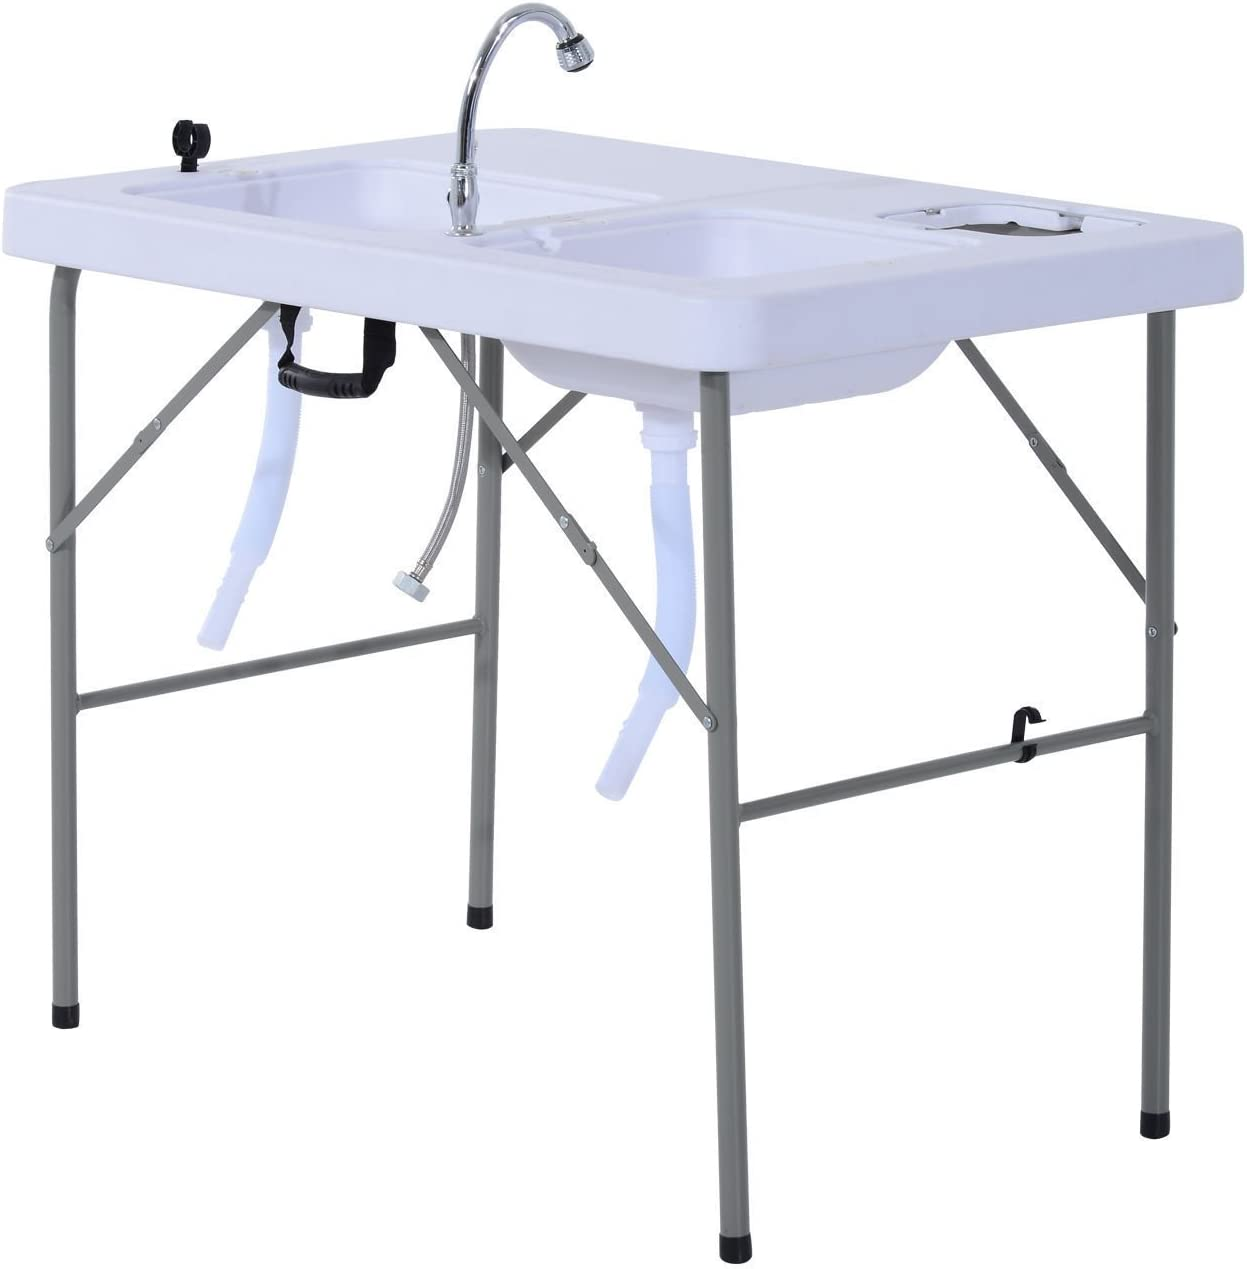 GJH One Fish Cleaning Table Portable Folding Faucet Sink Outdoor Camping Kitchen 39.8x26.0x31.9